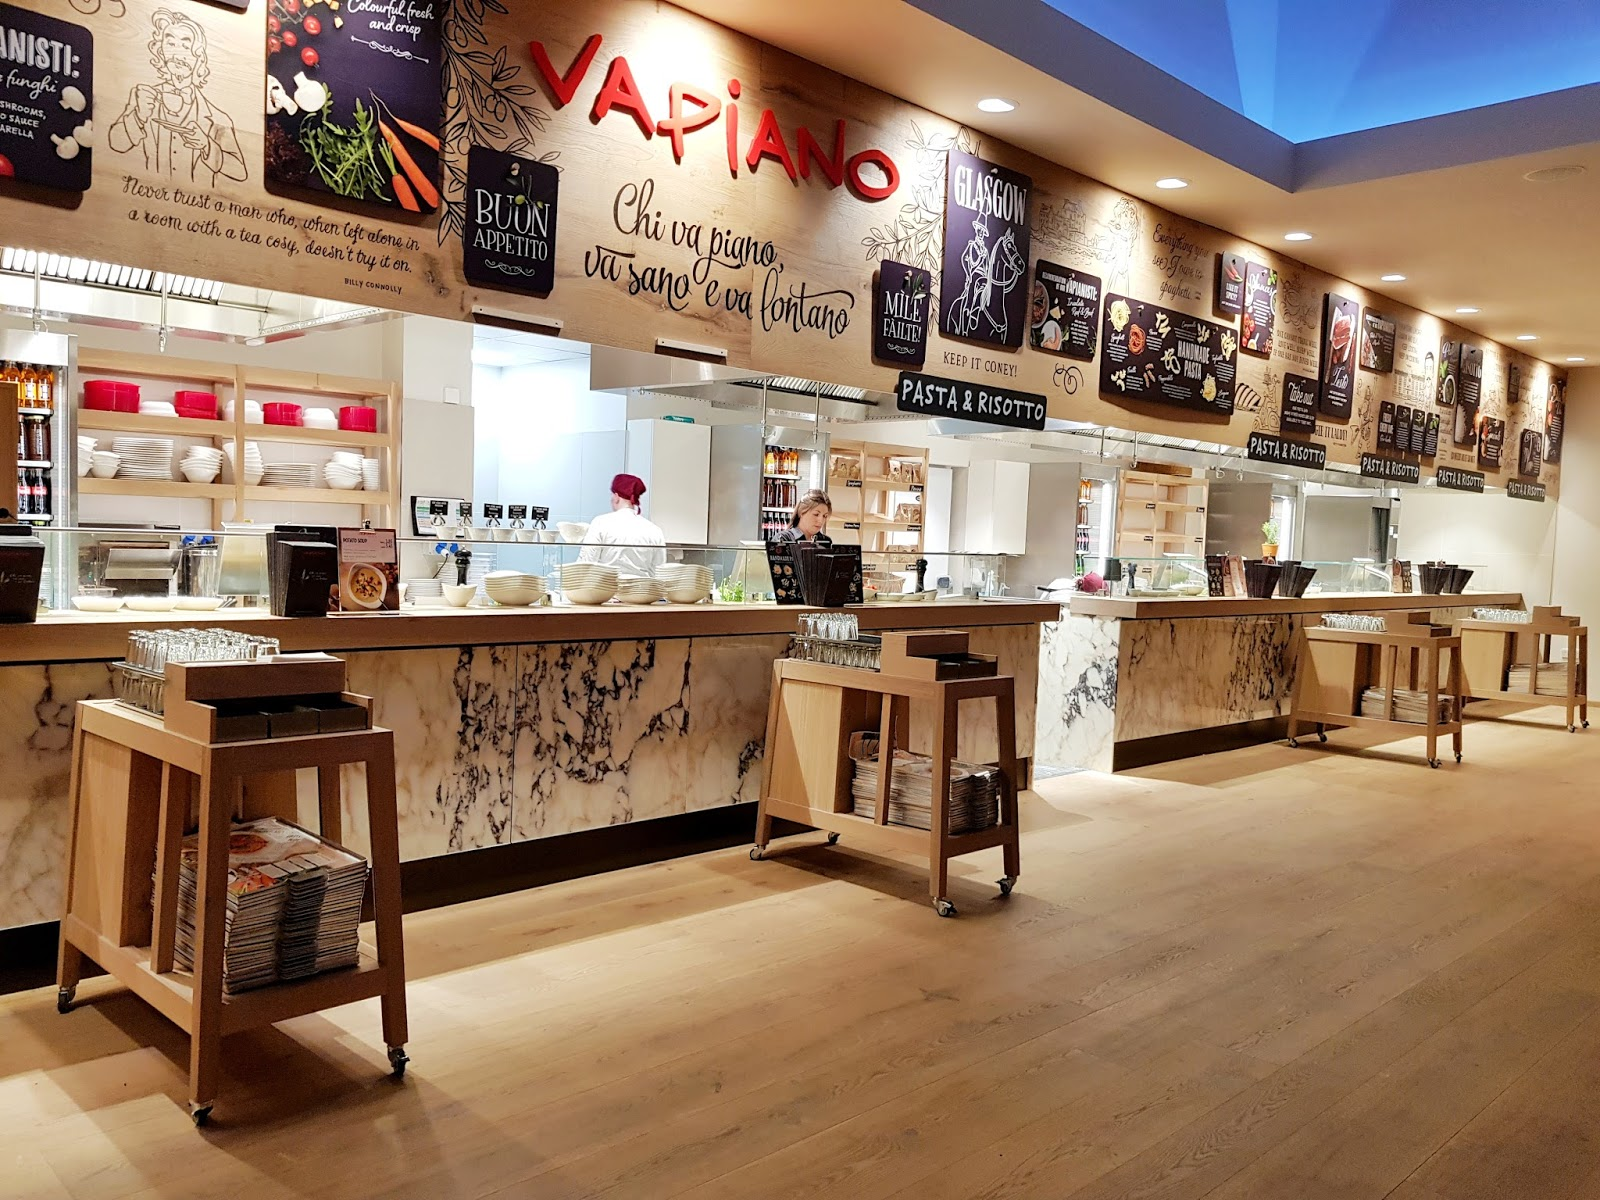 Vapiano in Glasgow: The New Mate Date Spot